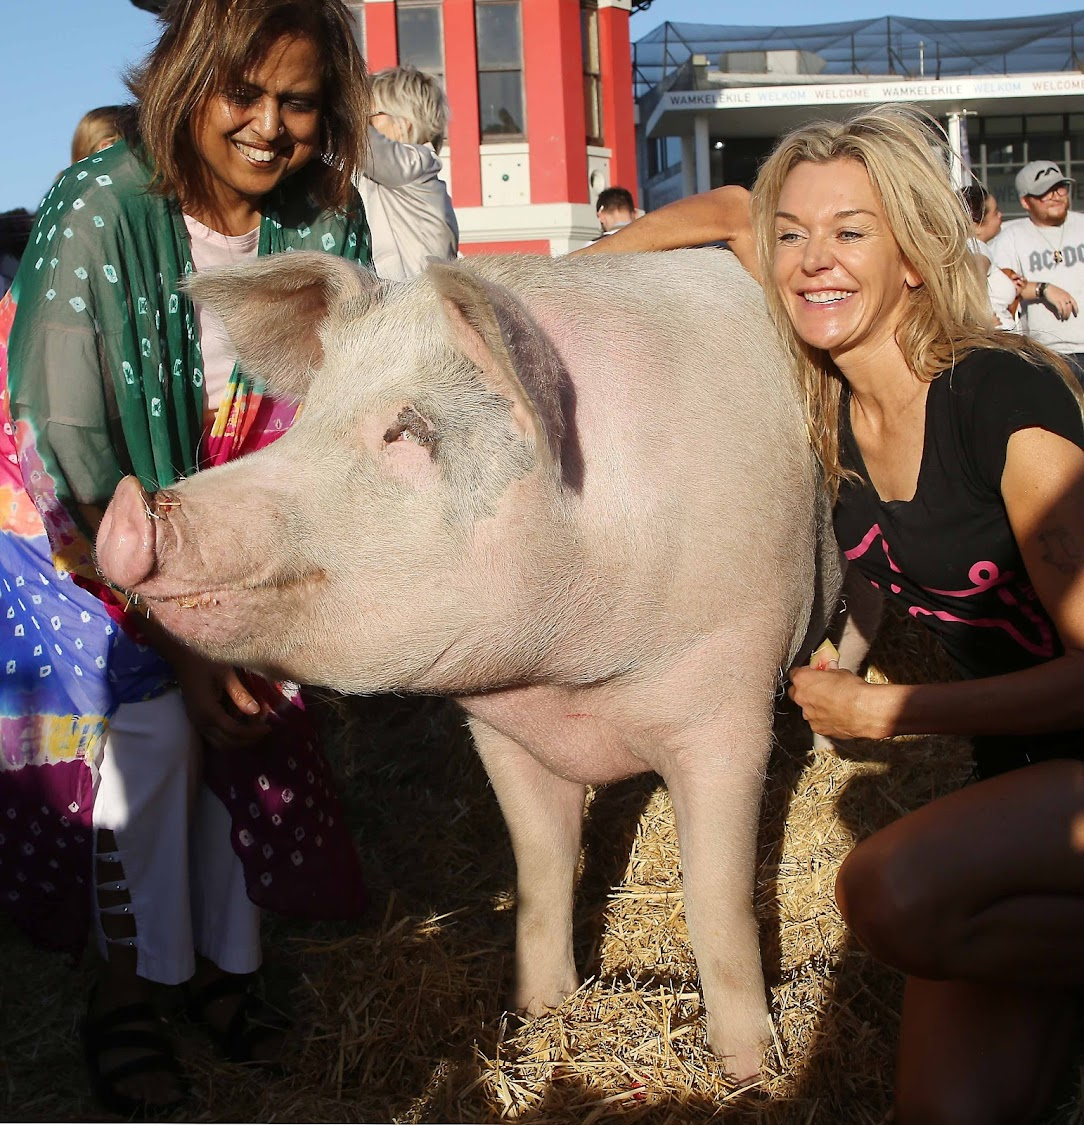 Pigcasso with her owner Joanne Lefson' who runs the Franschhoek Farm Sanctuary, and Professor Uma Mesthrie, a patron of the sanctuary.